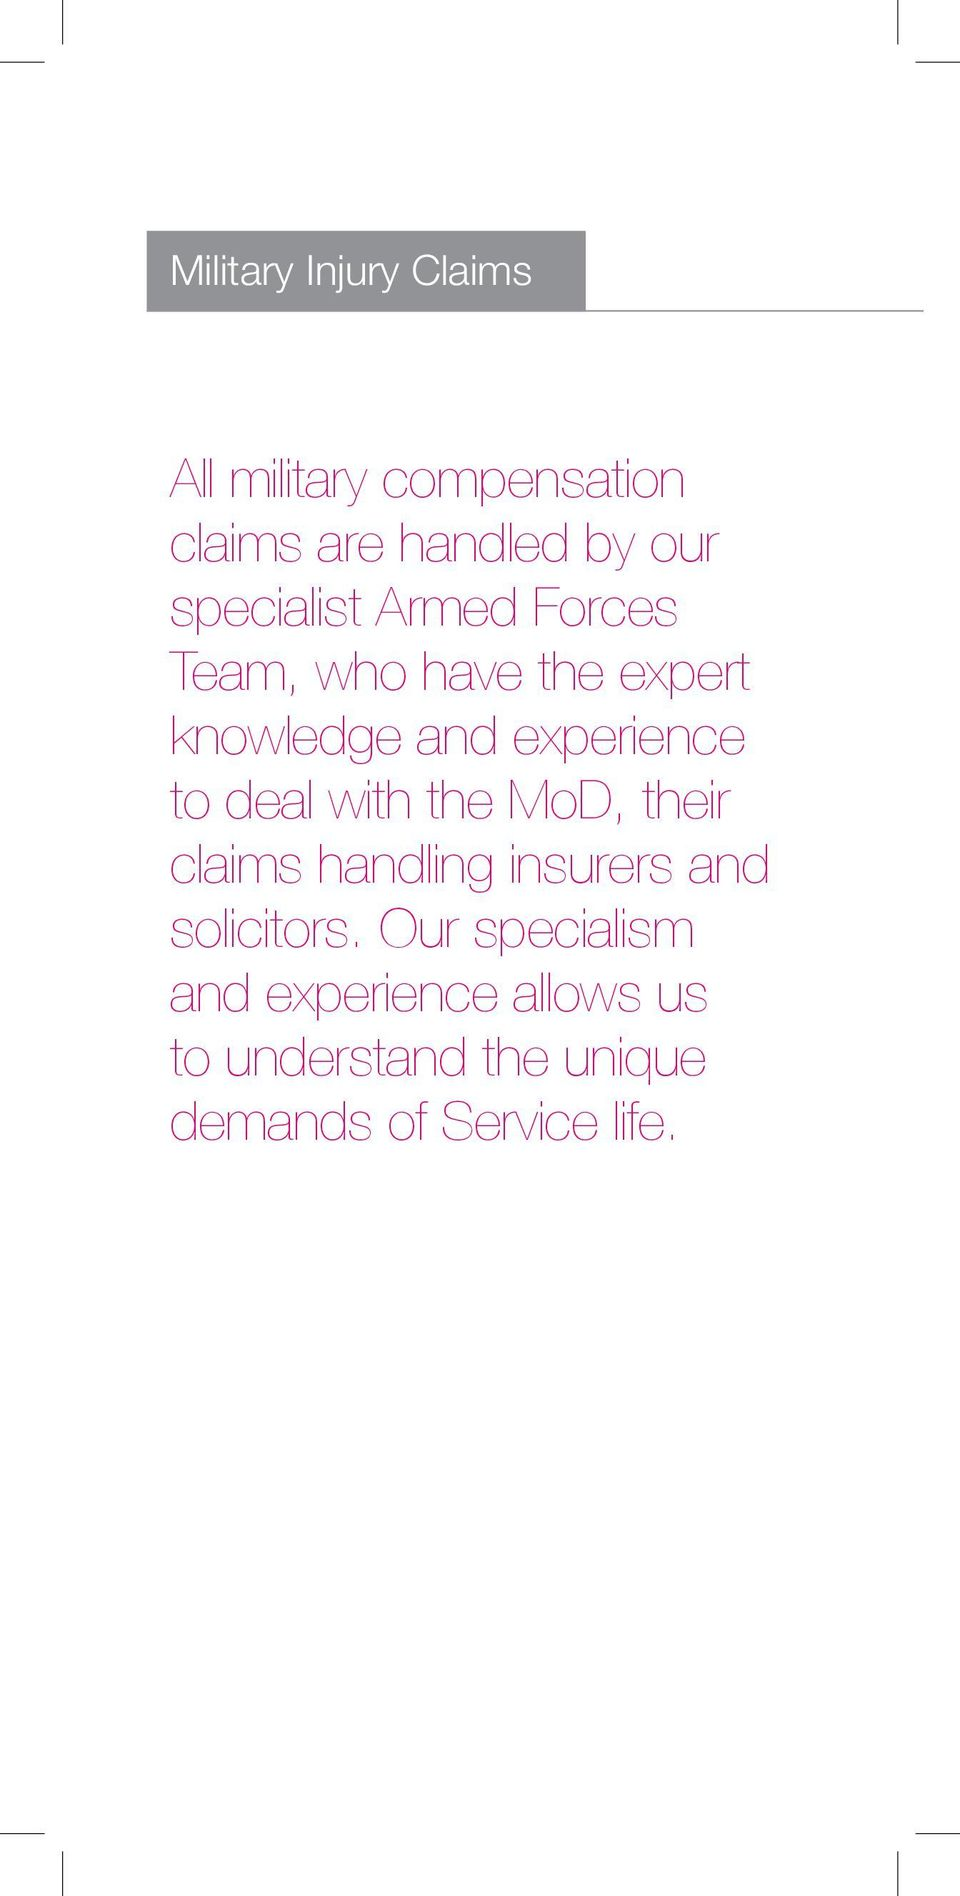 to deal with the MoD, their claims handling insurers and solicitors.